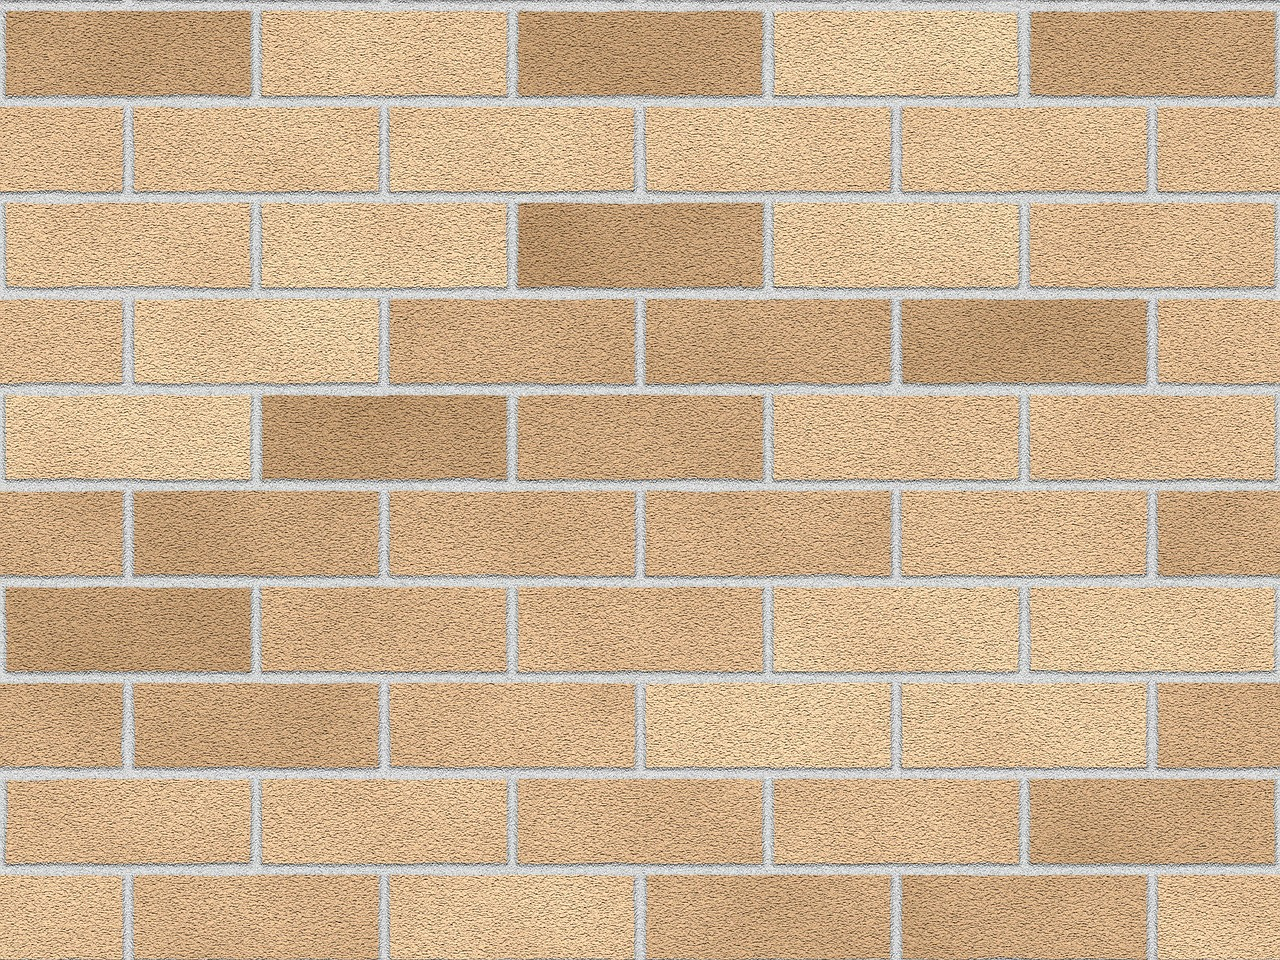 brick wall wall art free photo